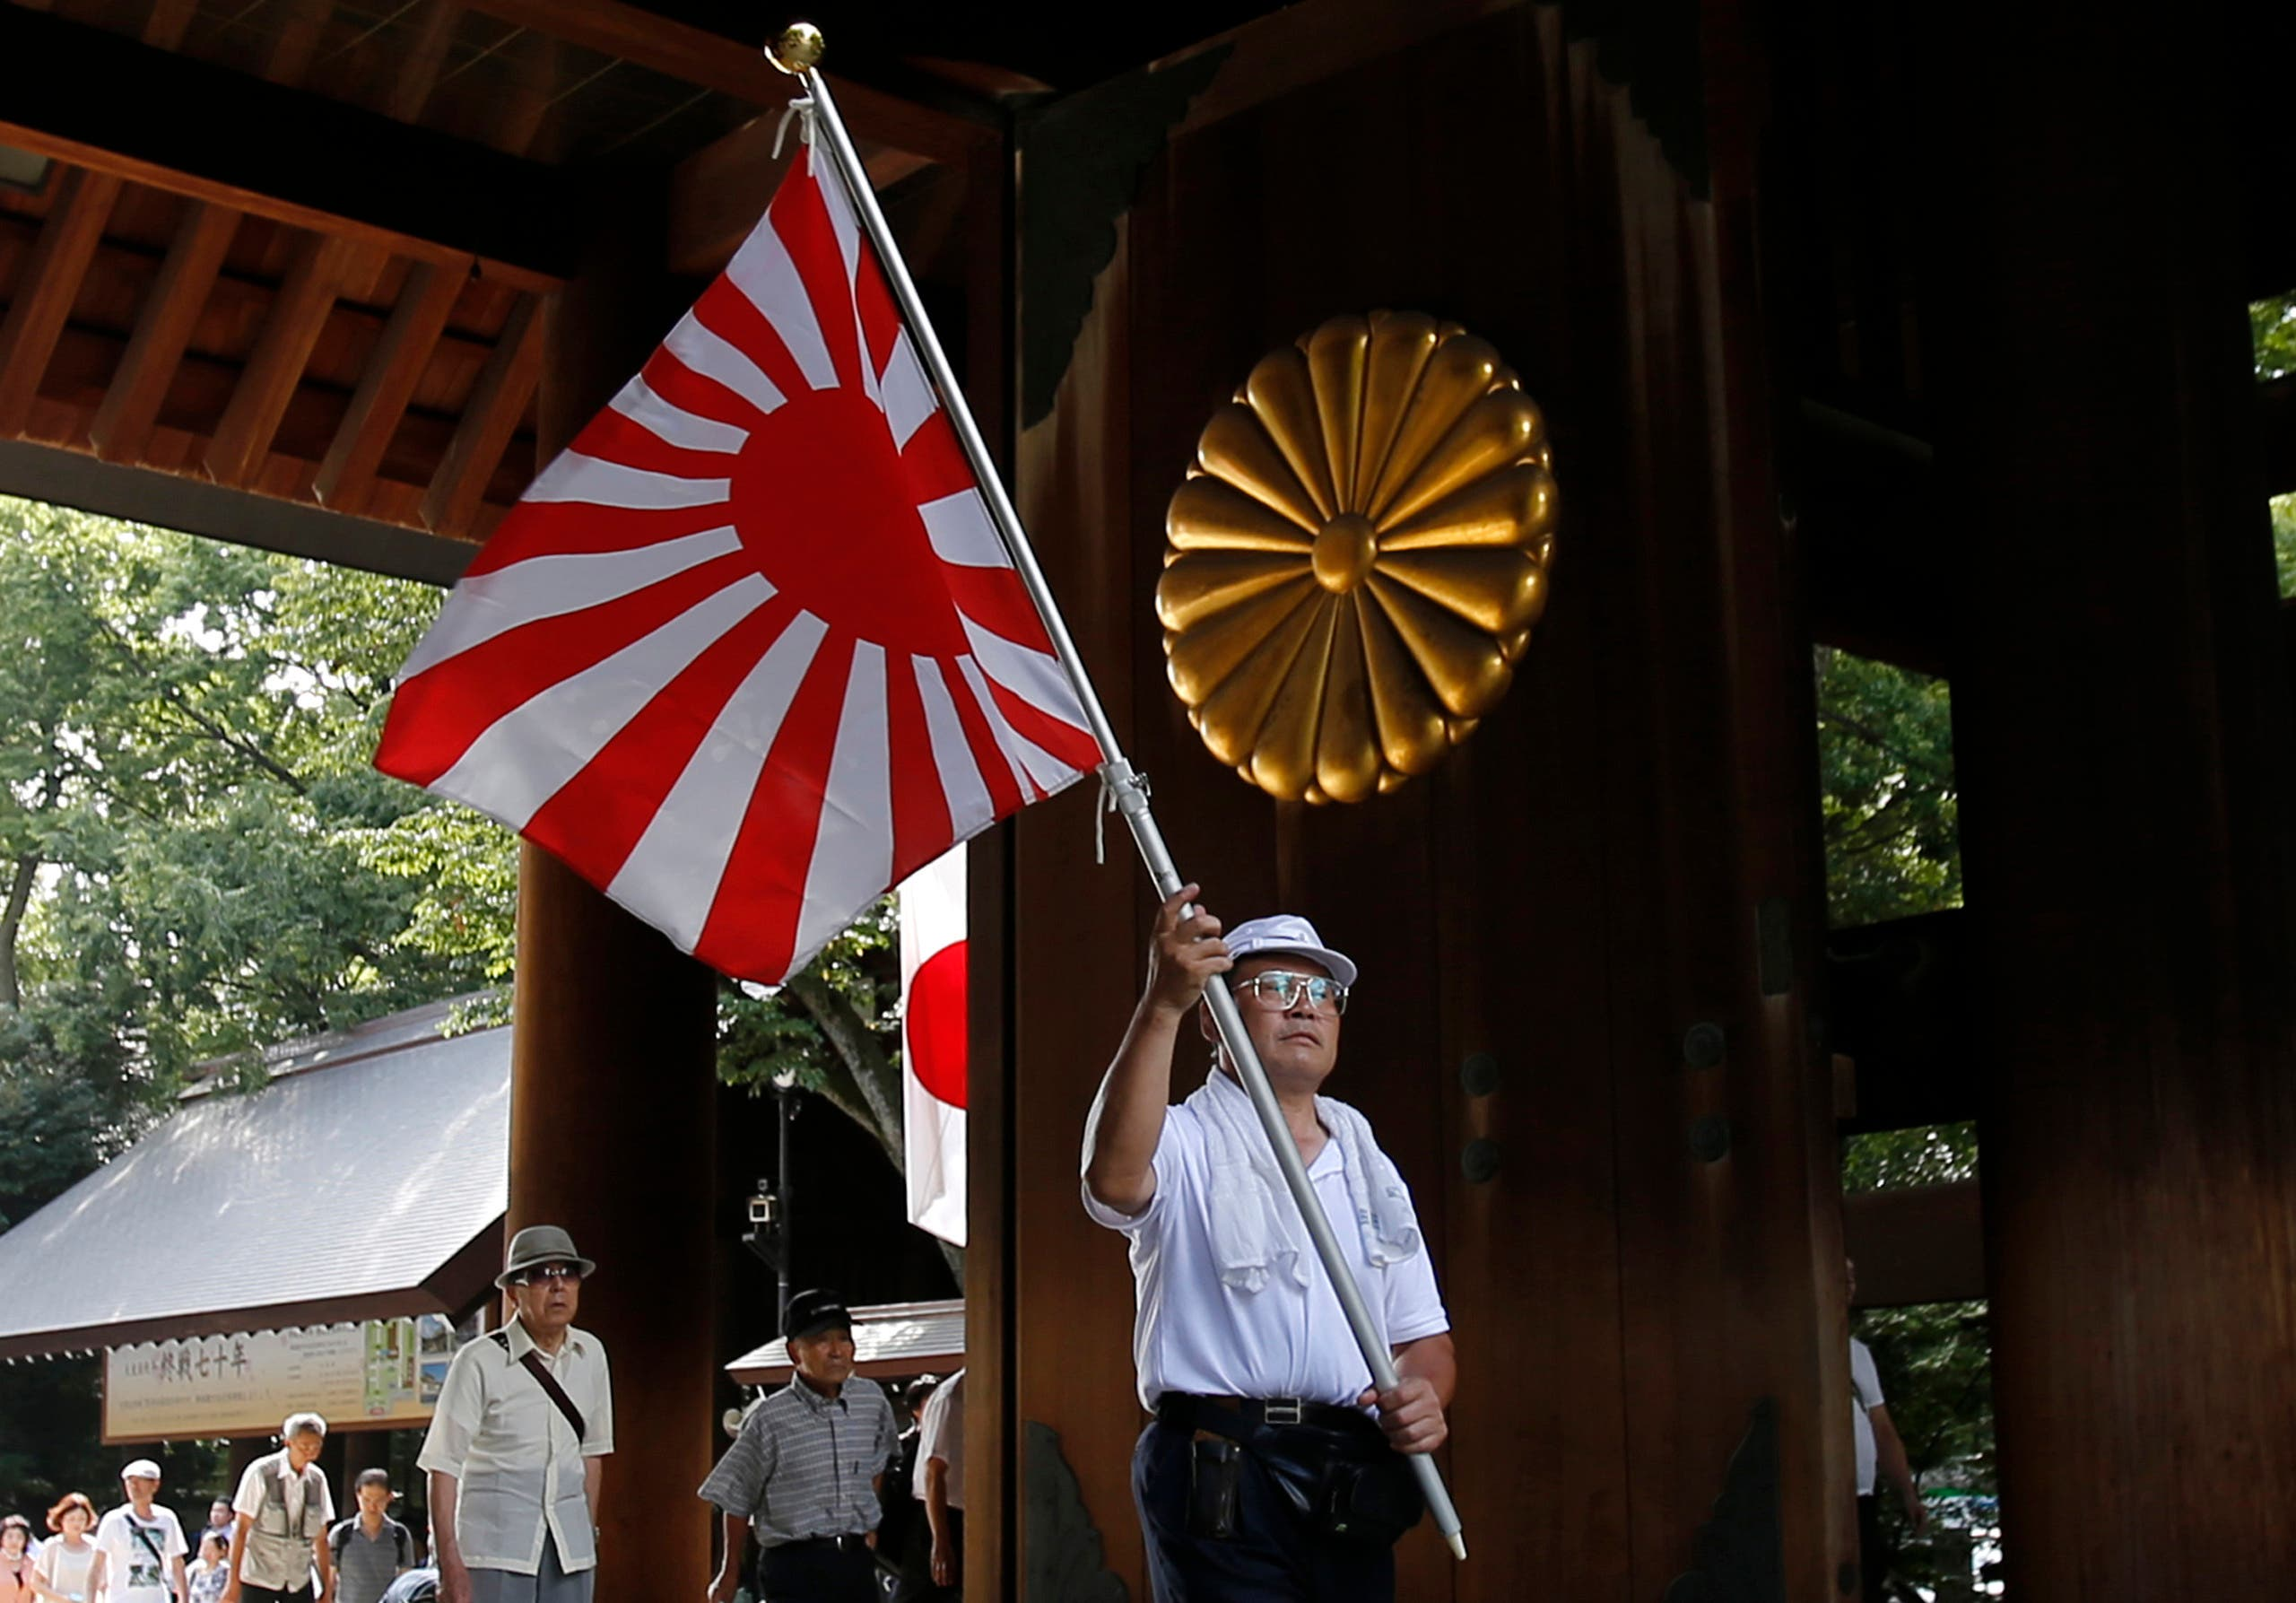 A visitor carries a rising sun flag as they come to the Yasukuni Shrine to pay respects to the country's war dead, in Tokyo, Saturday, Aug. 15, 2015. Japan marked Saturday the 70th anniversary of the end of World War II. (File photo: AP)